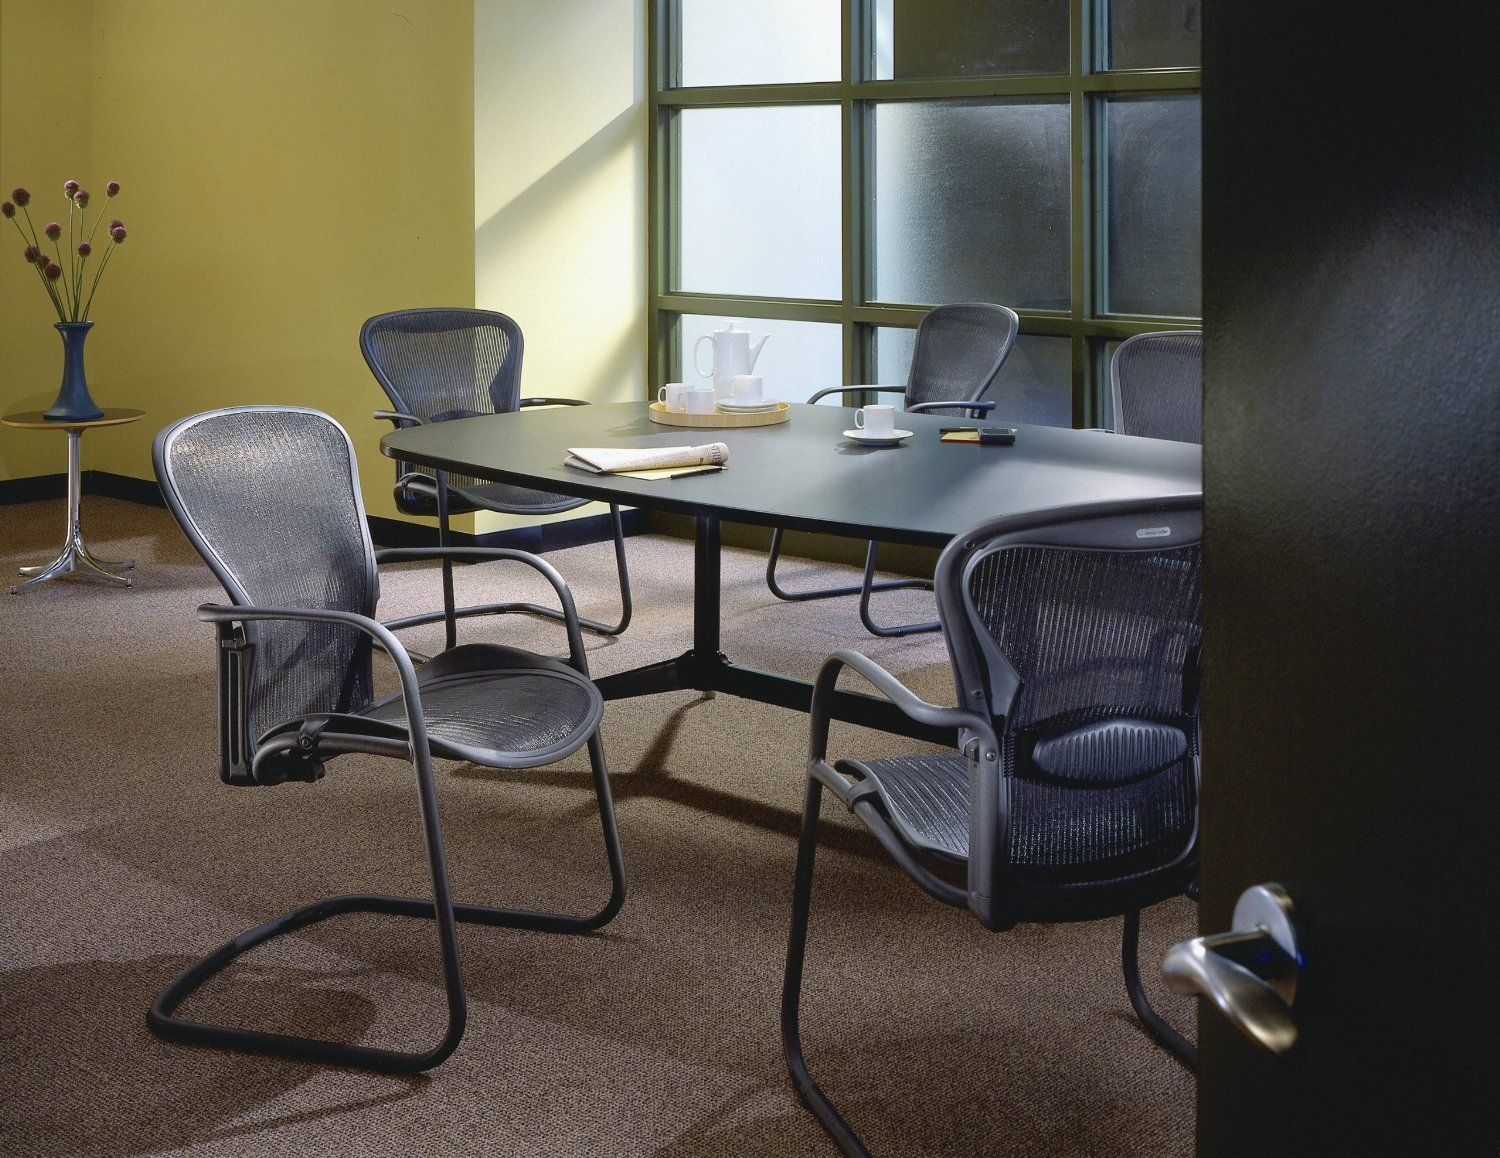 Aeron Side Chair A Perfect Seat For Visitors To Your Office Or Home Combines Ergonomi Dining Room Chairs Ikea Office Furnishing Leather Chaise Lounge Chair #small #side #chairs #for #living #room